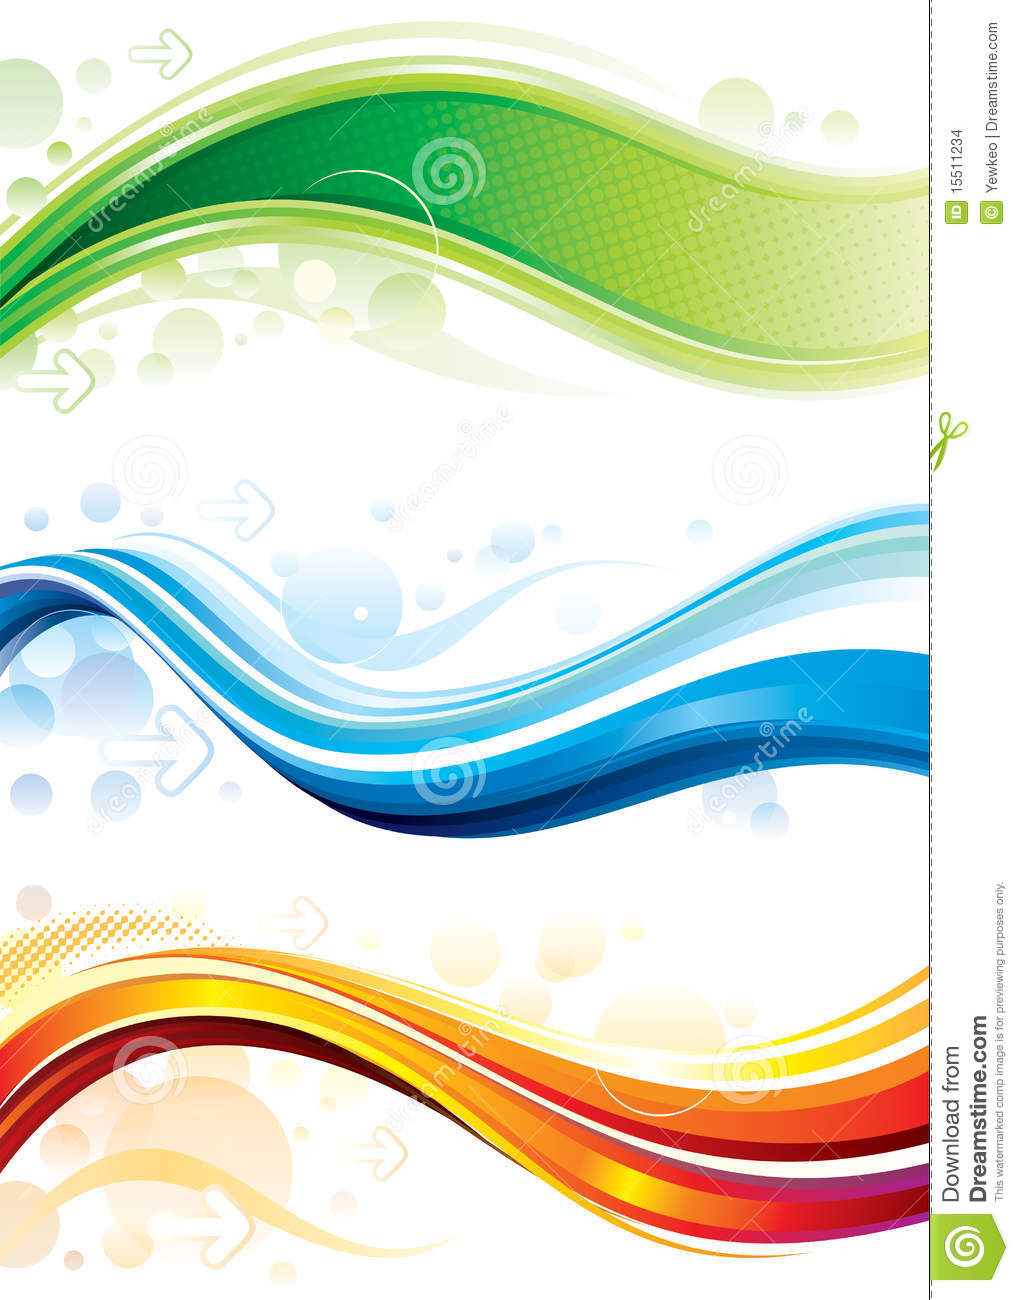 Web Banners Stock Images - Image: 15511234: www.dreamstime.com/stock-images-web-banners-image15511234